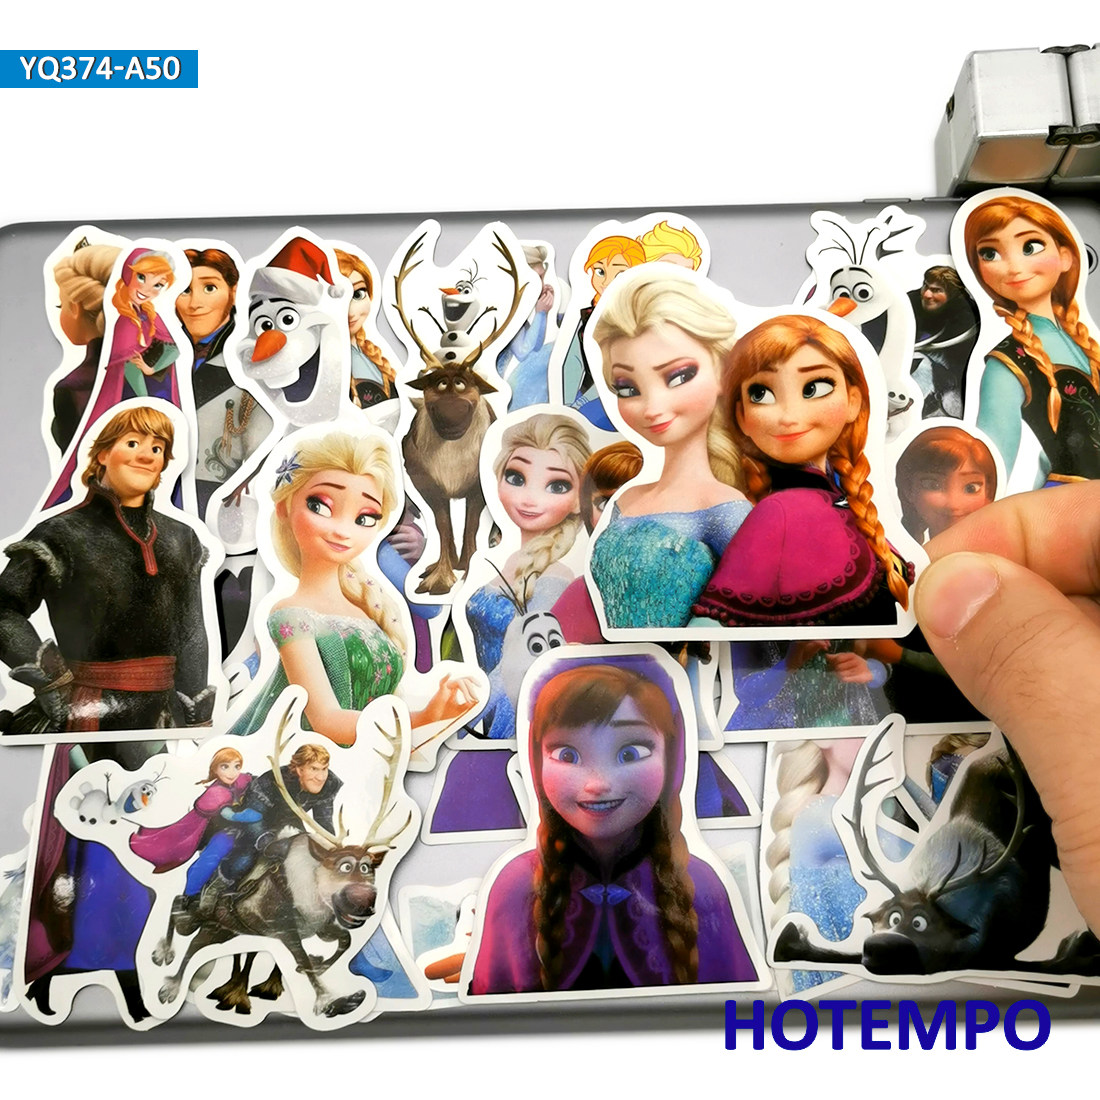 50pcs Cute Anime Princess Elsa Anna Movie Stickers Toys For Children Scrapbook Stationery Mobile Phone Laptop Luggage Stickers